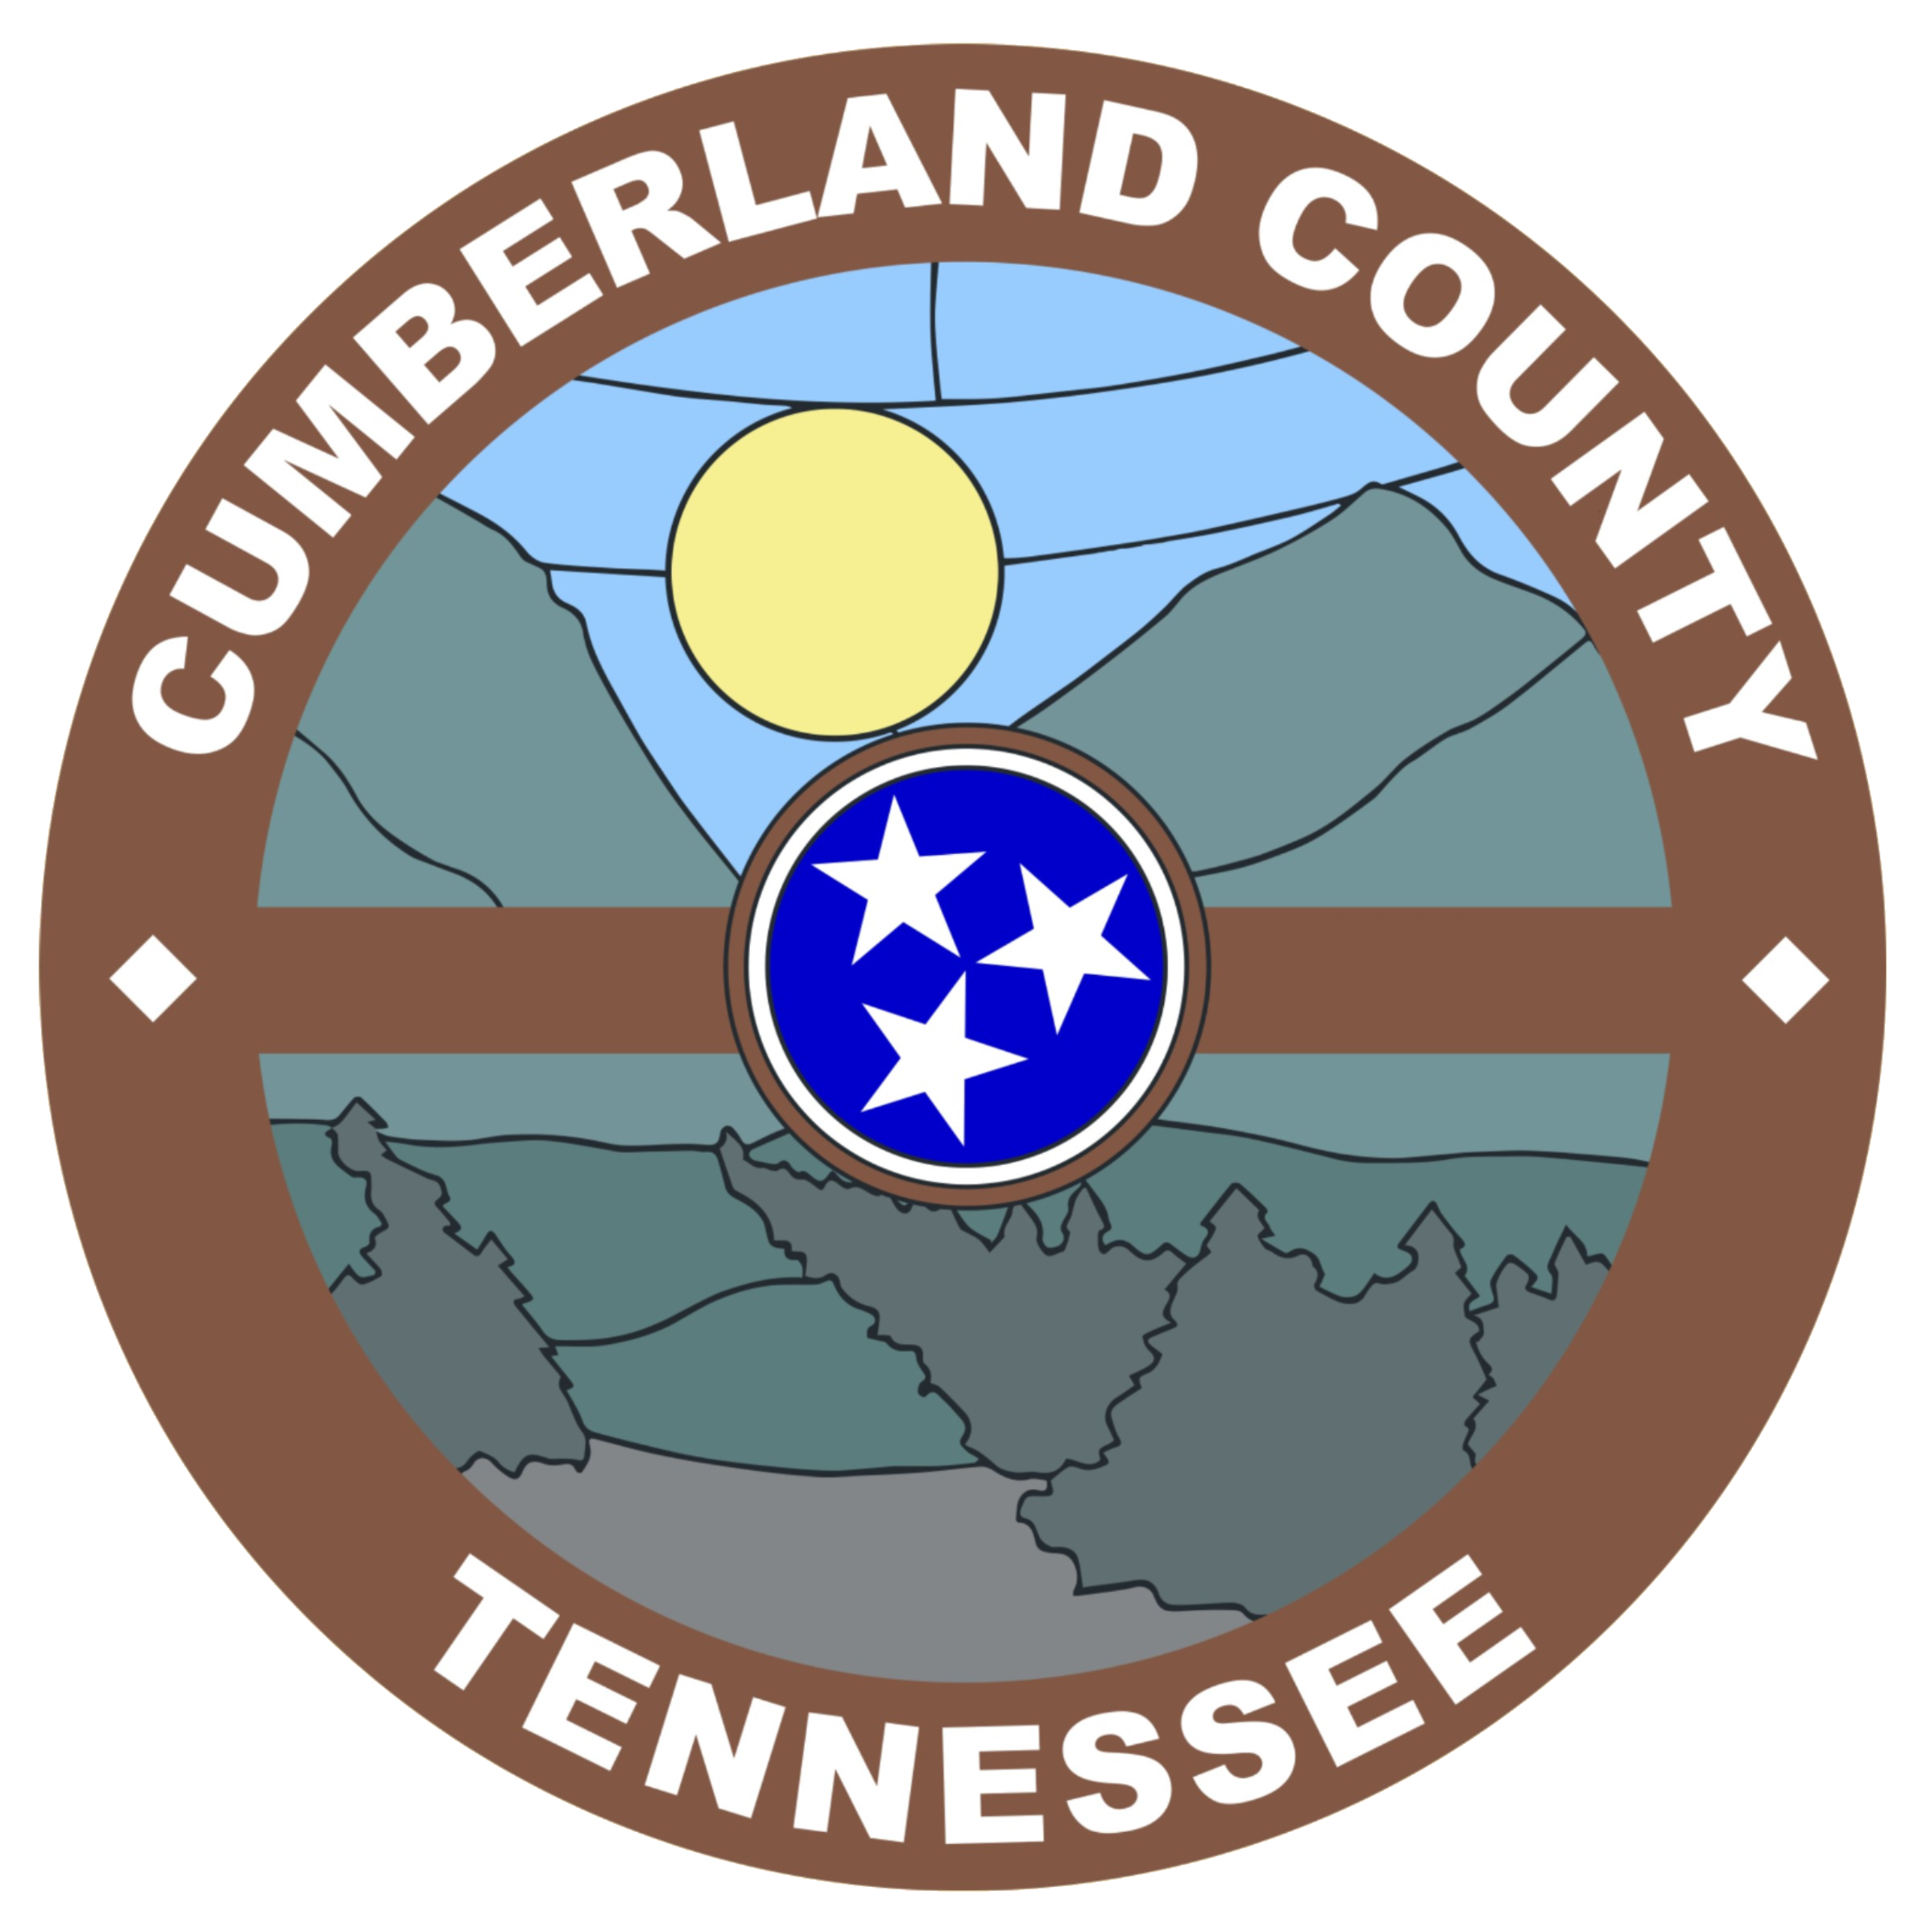 Cumberland County, TN